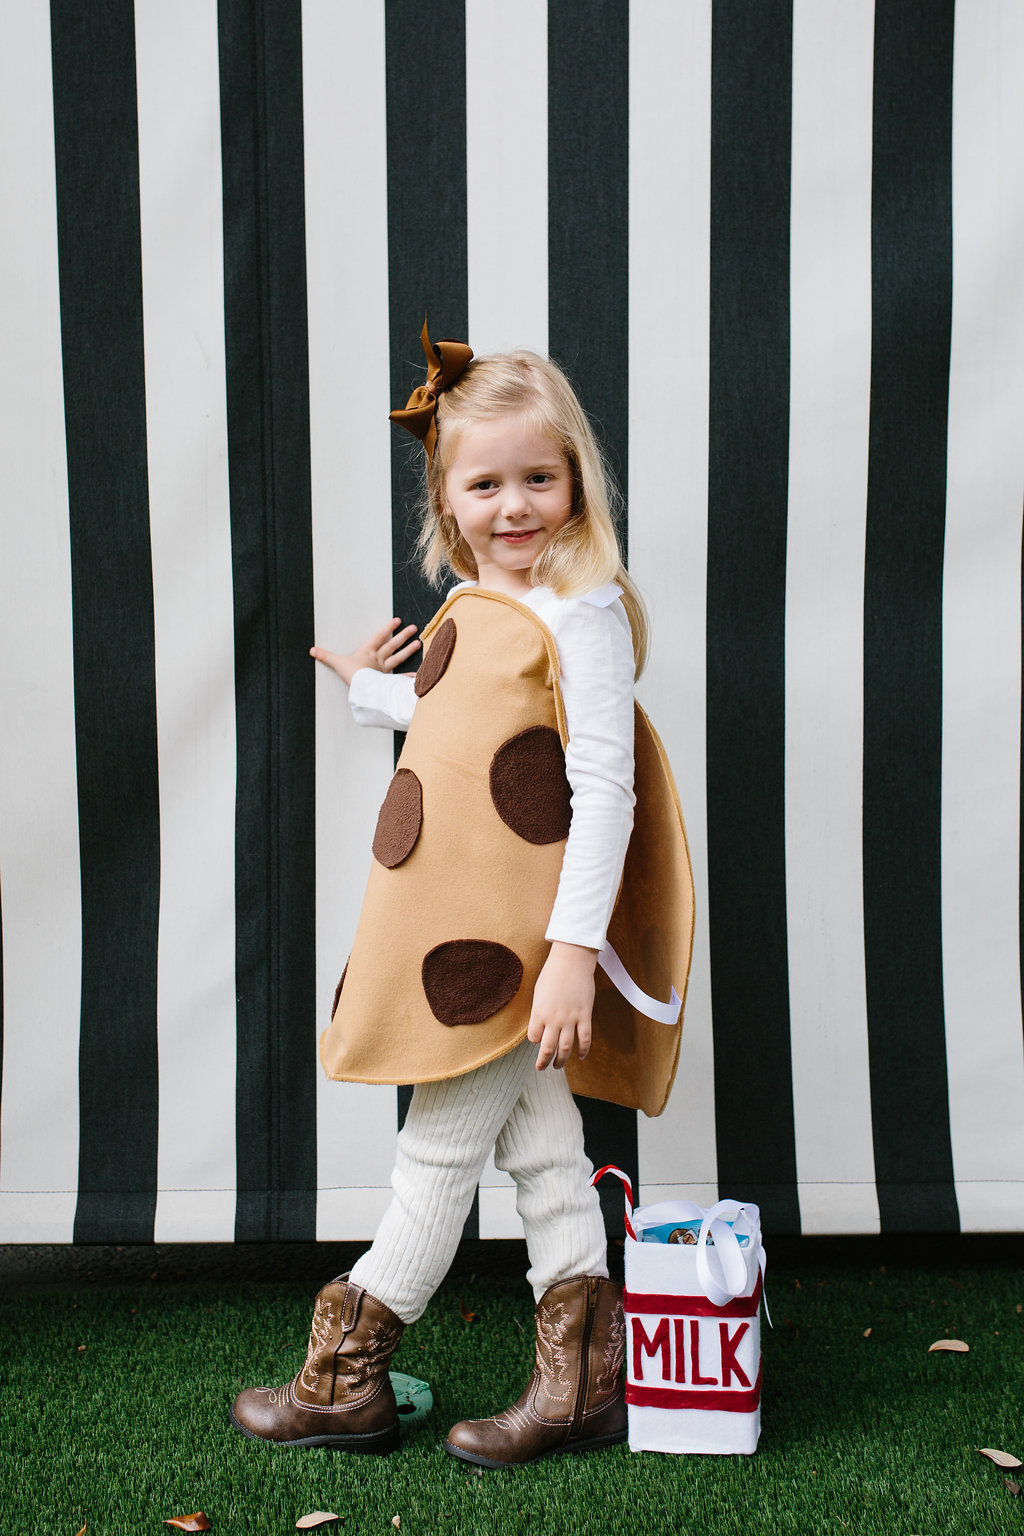 A little girl in a Chocolate Chip Cookie Costume with a carton of milk